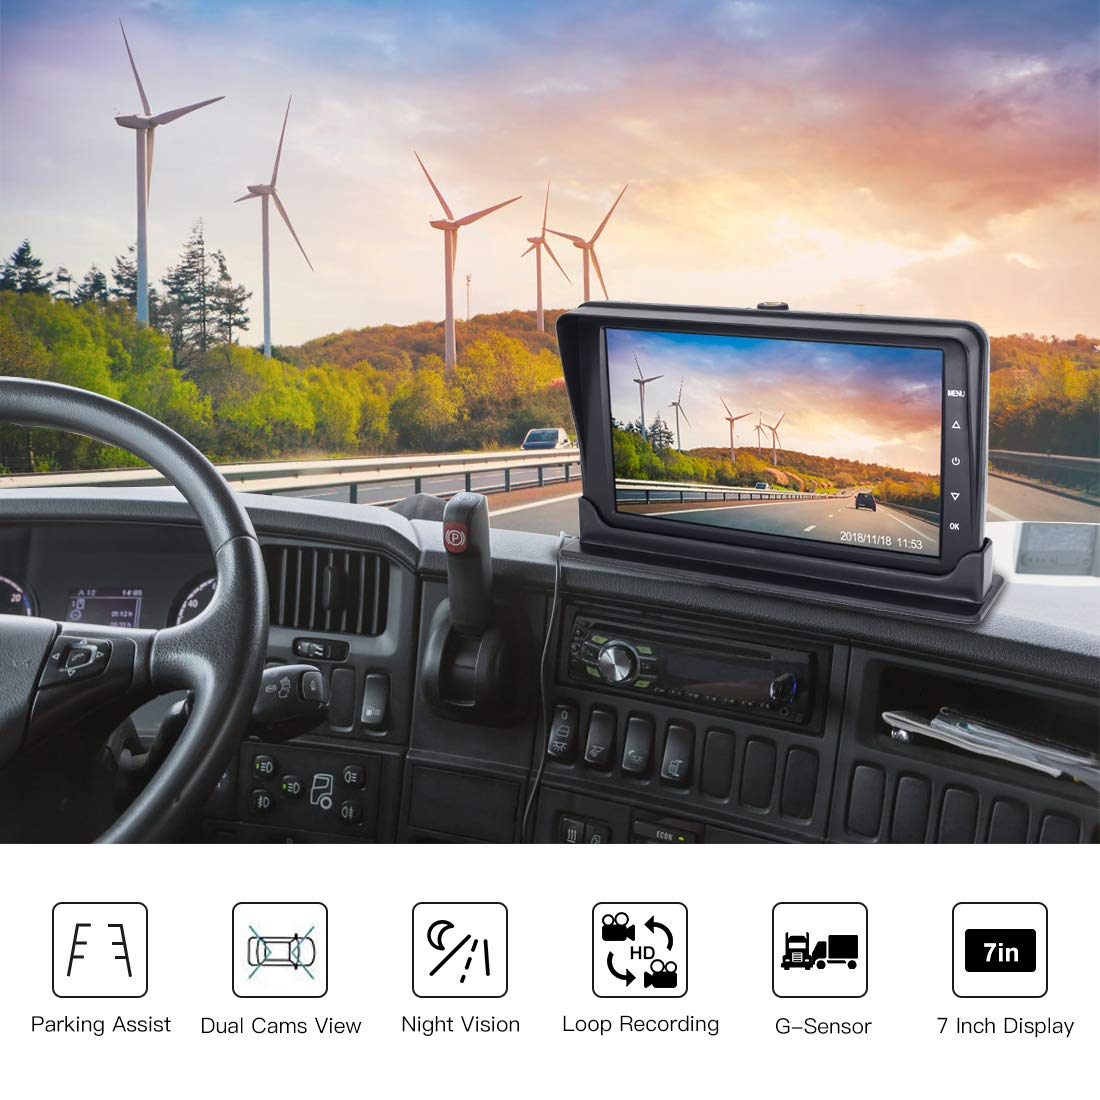 Dual Channel Car Dash Cam 170/° Wide Angle 1080P Front Car Monitor Recorder with AHD 720P Rear View Backup Camera,Built-in G-Sensor Loop Recording,Motion Detection SVTCAM JLY-01